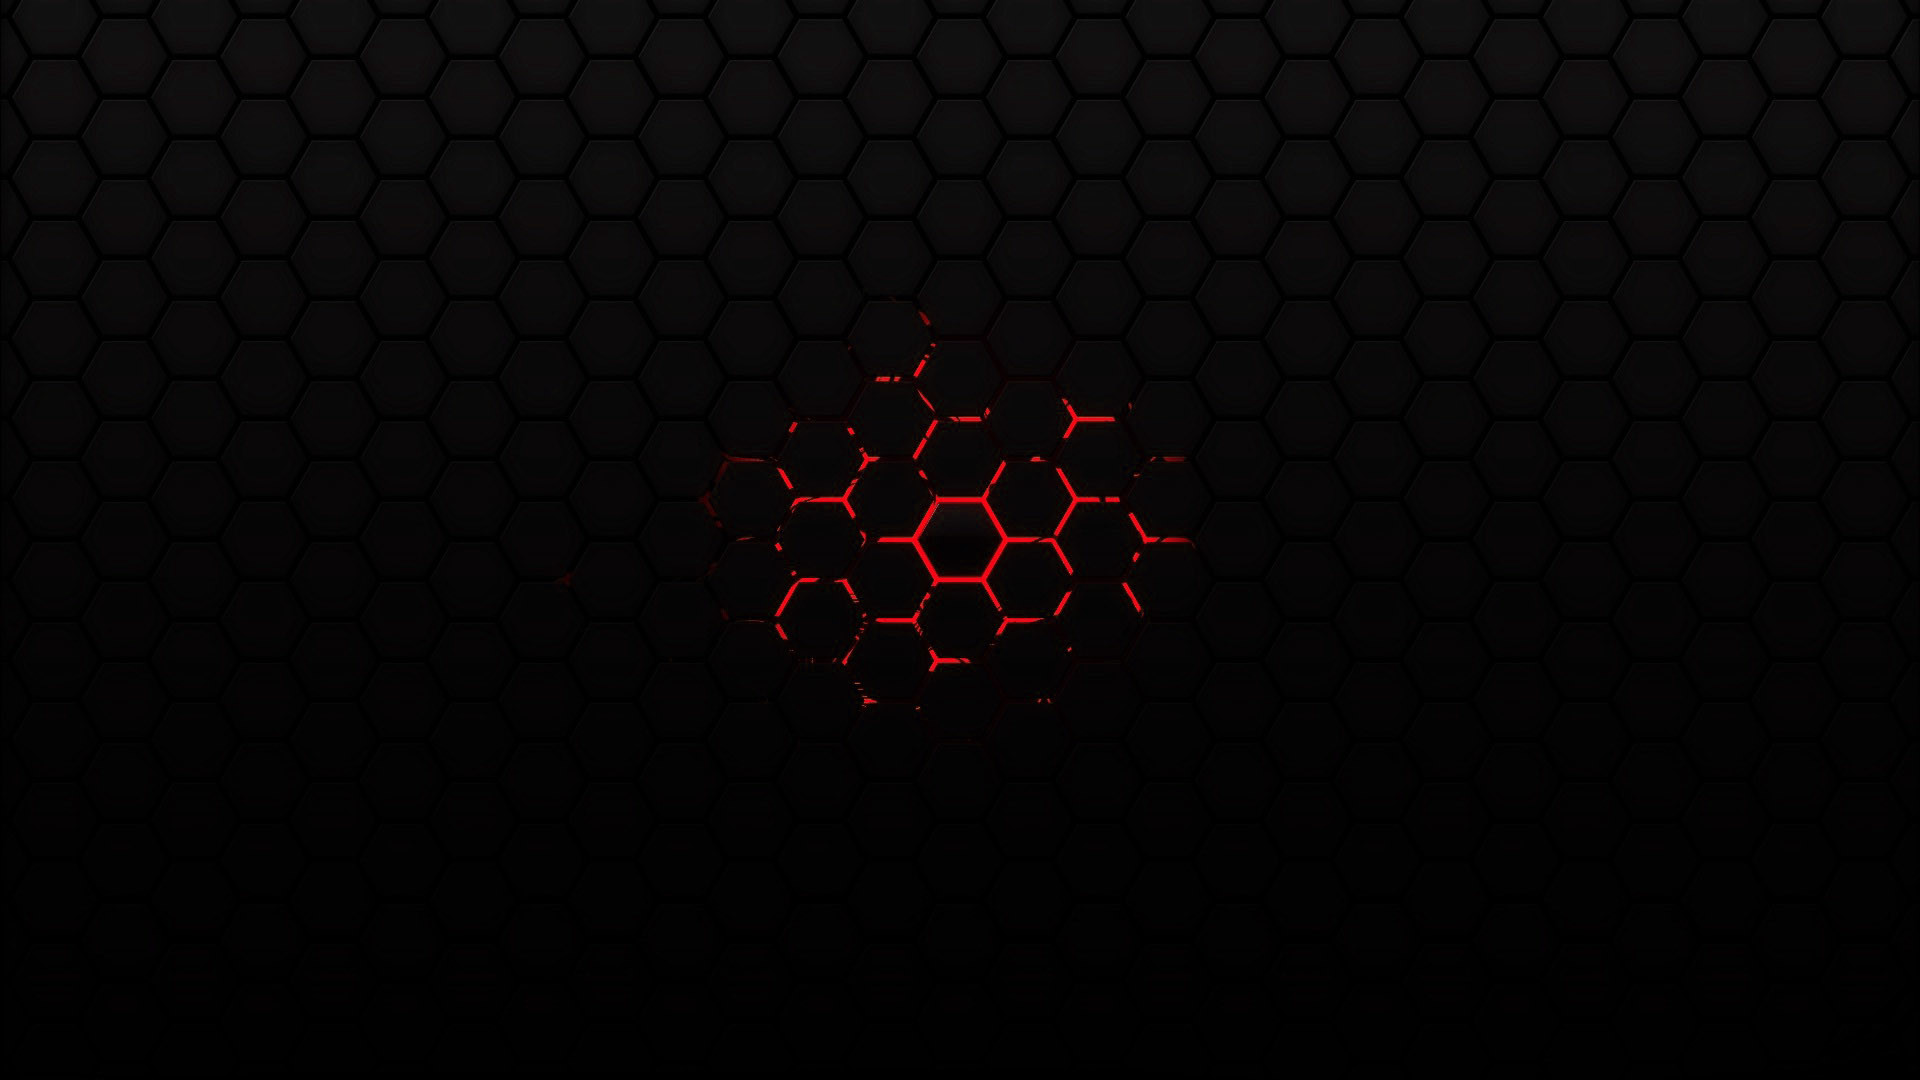 1920x1080 Black Red Black Background Wallpaper At 3d Wallpapers